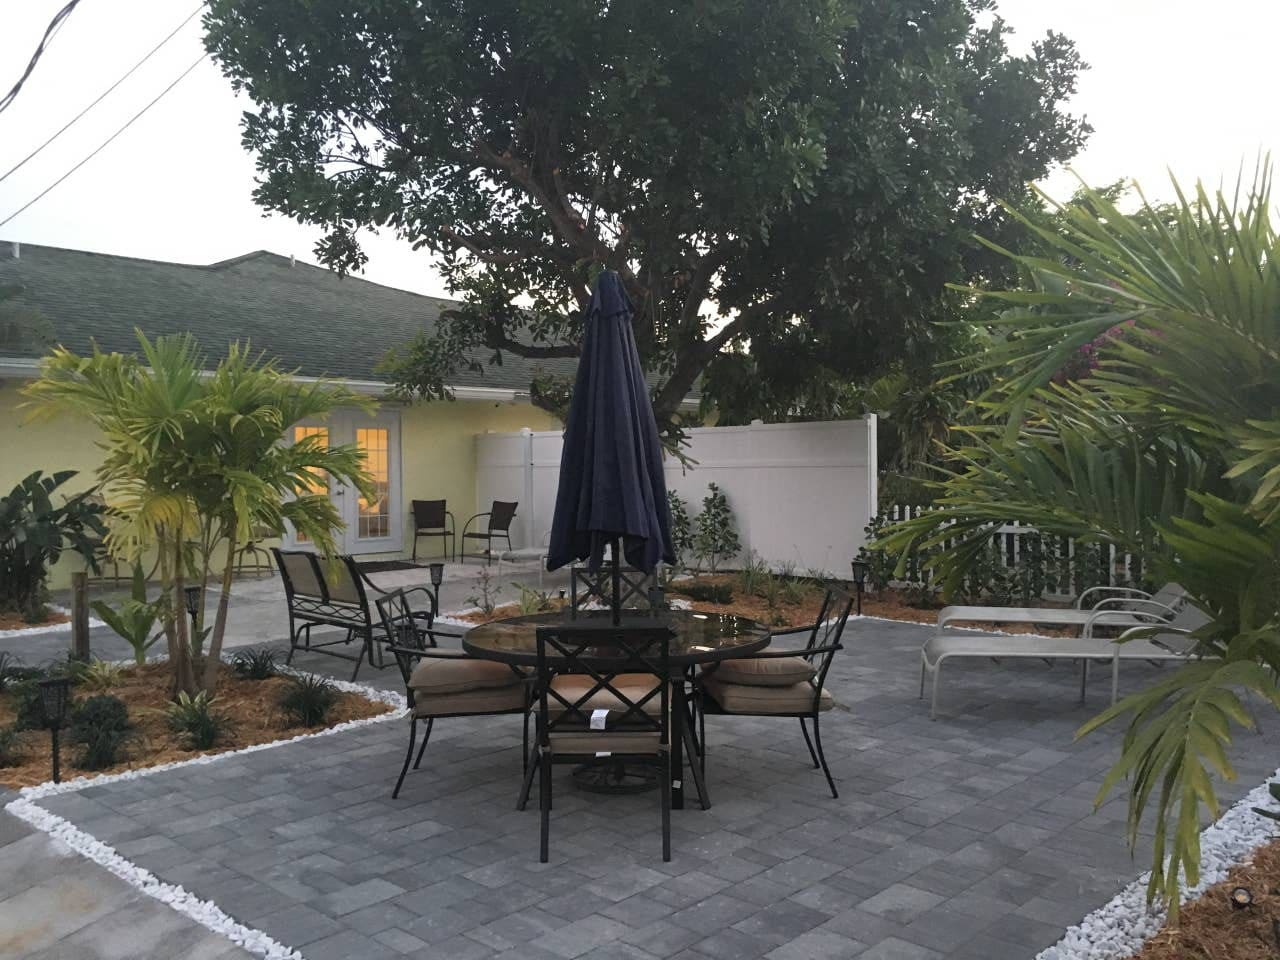 The backyard is perfect for soaking up the sun, reading and relaxing under a tree, or meal time with your party as you take in Florida's natural beauty! Evening time is even more magical as the mood lighting comes on and the night sky takes over.